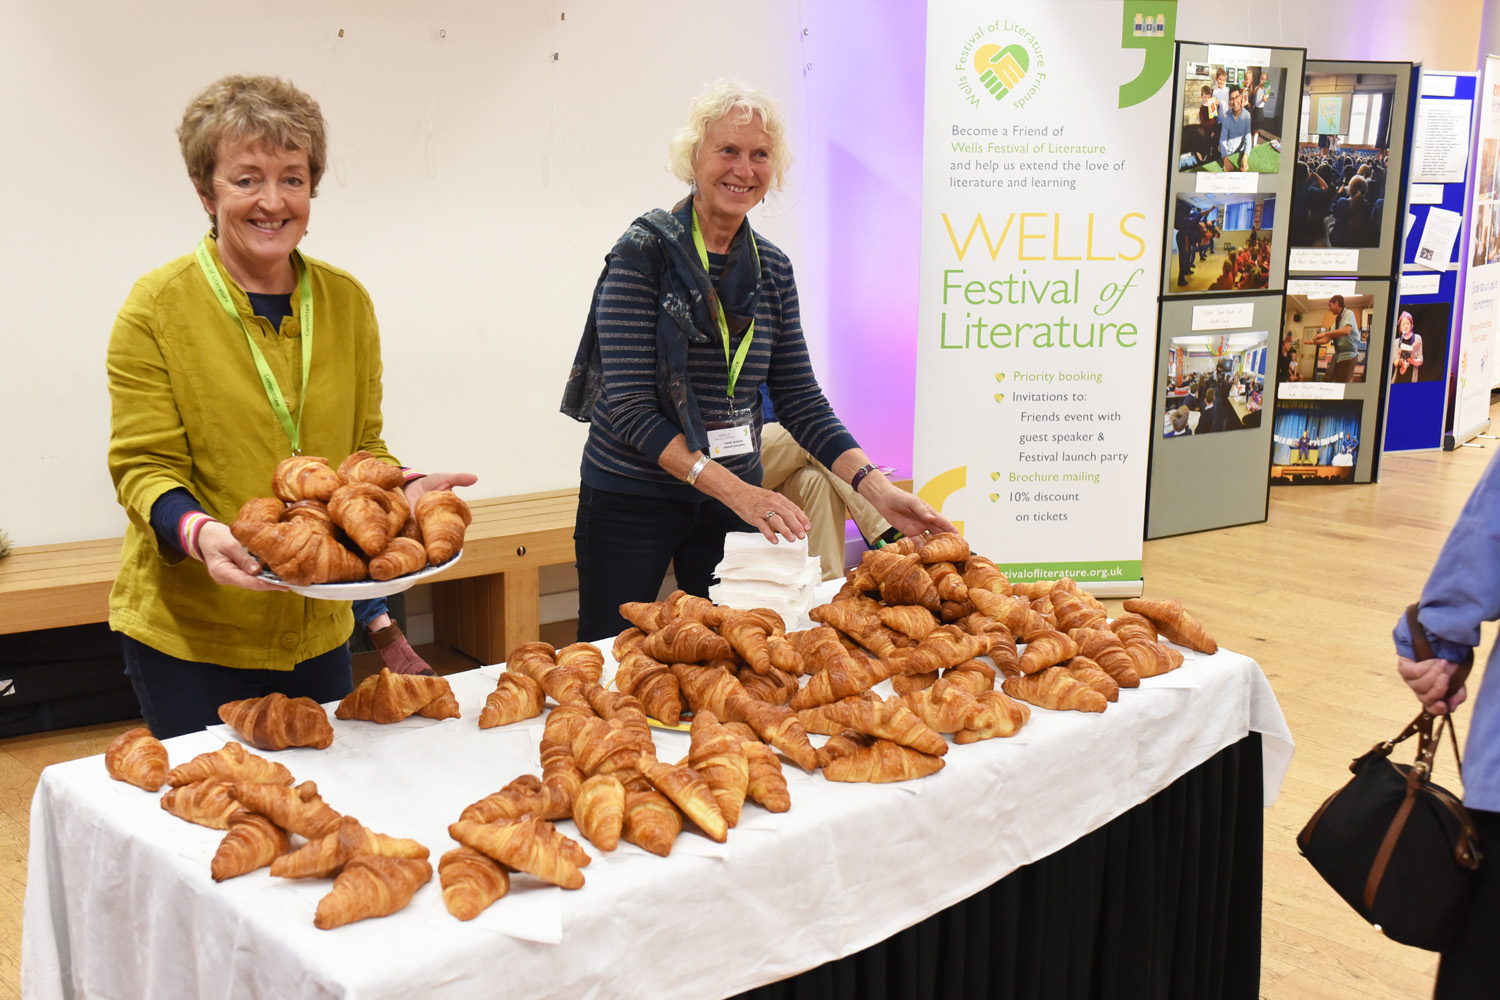 Croissants - 2019 Wells Festival of Literature